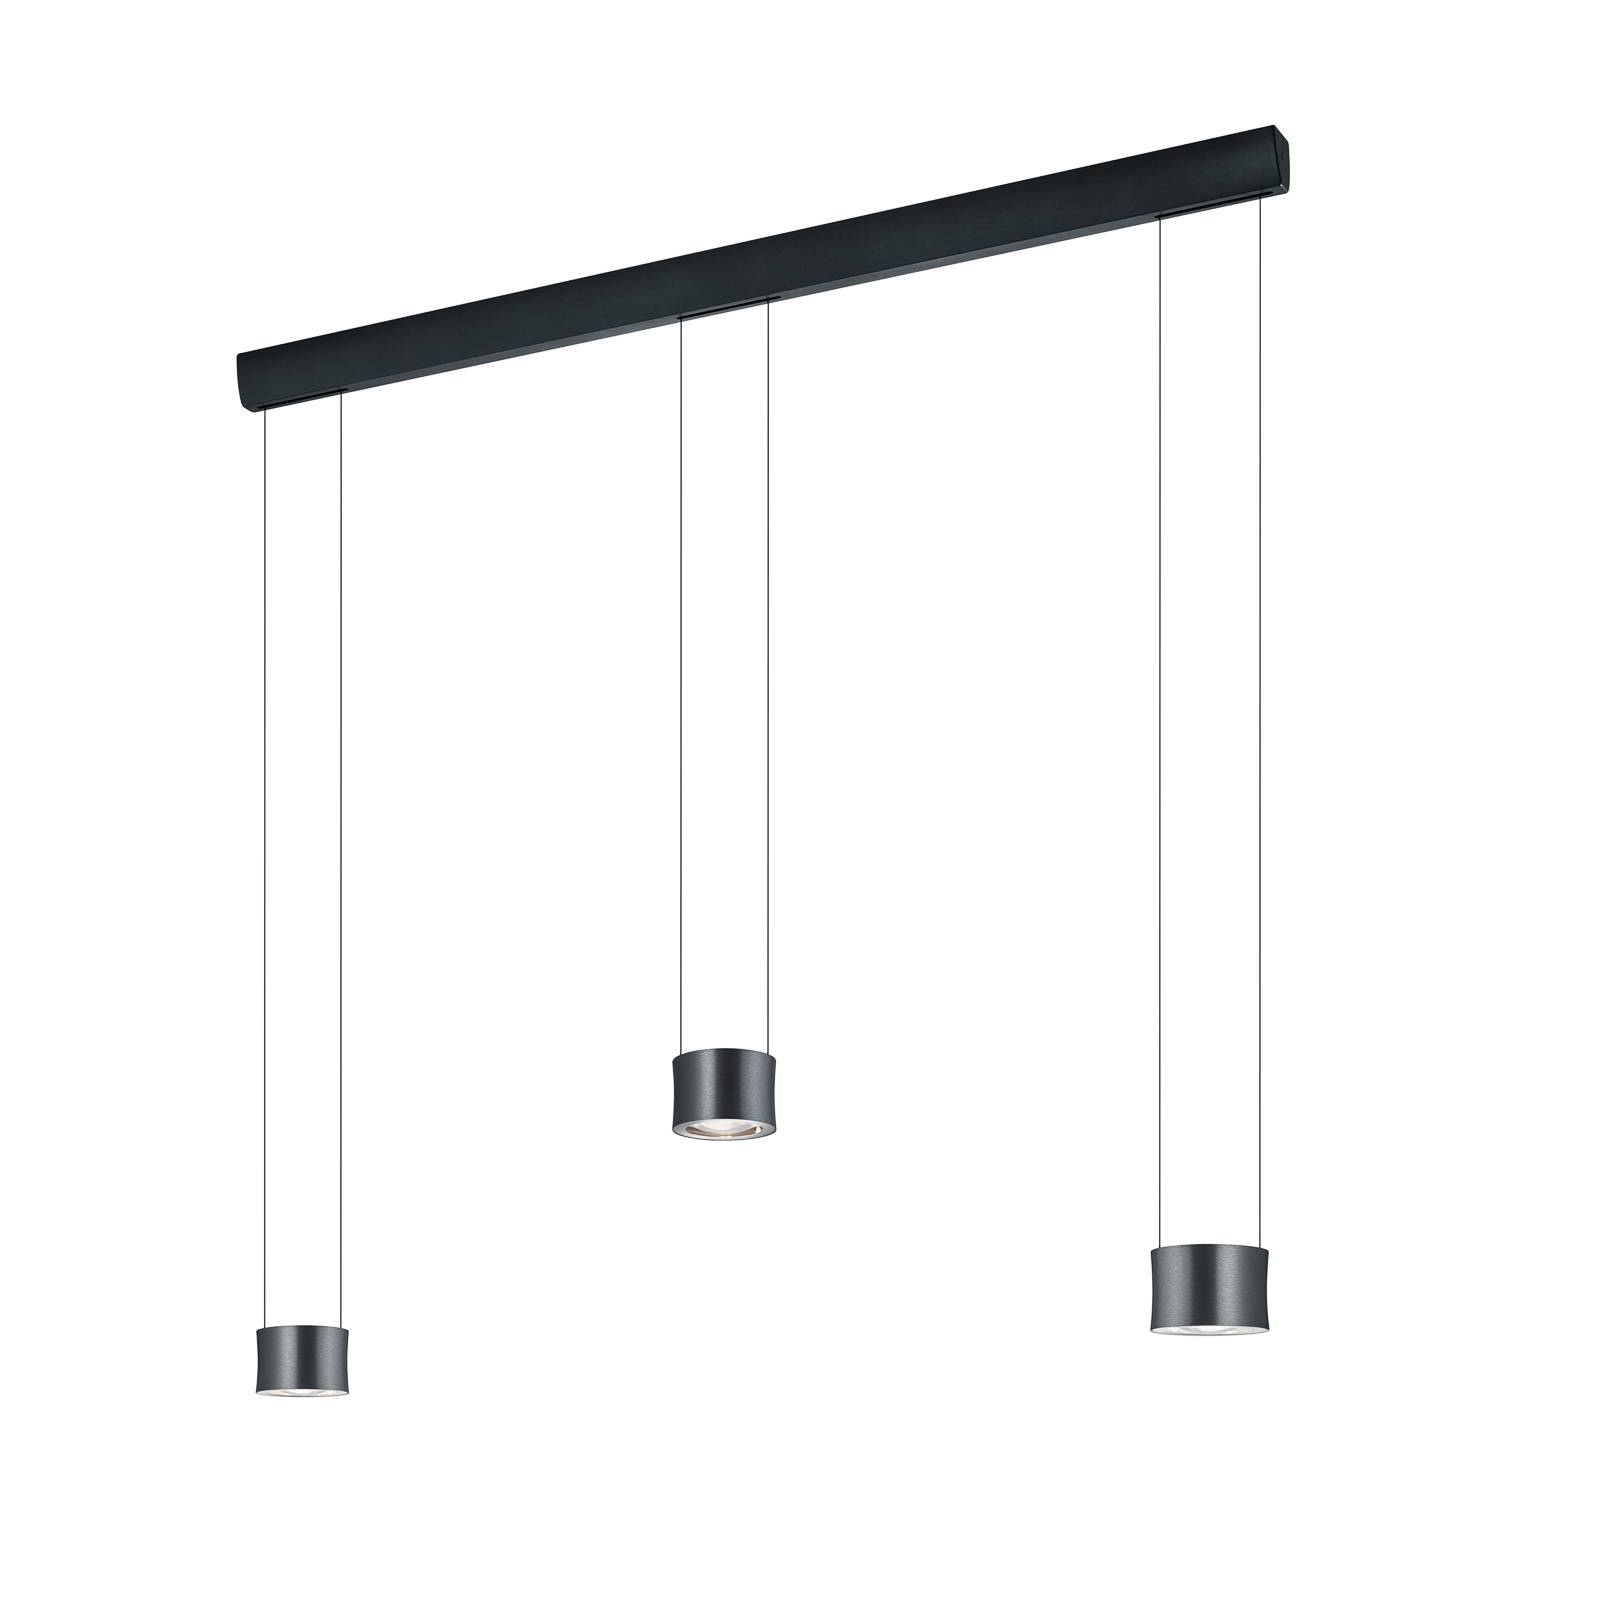 BANKAMP Impulse LED hanglamp 3-lamps antraciet